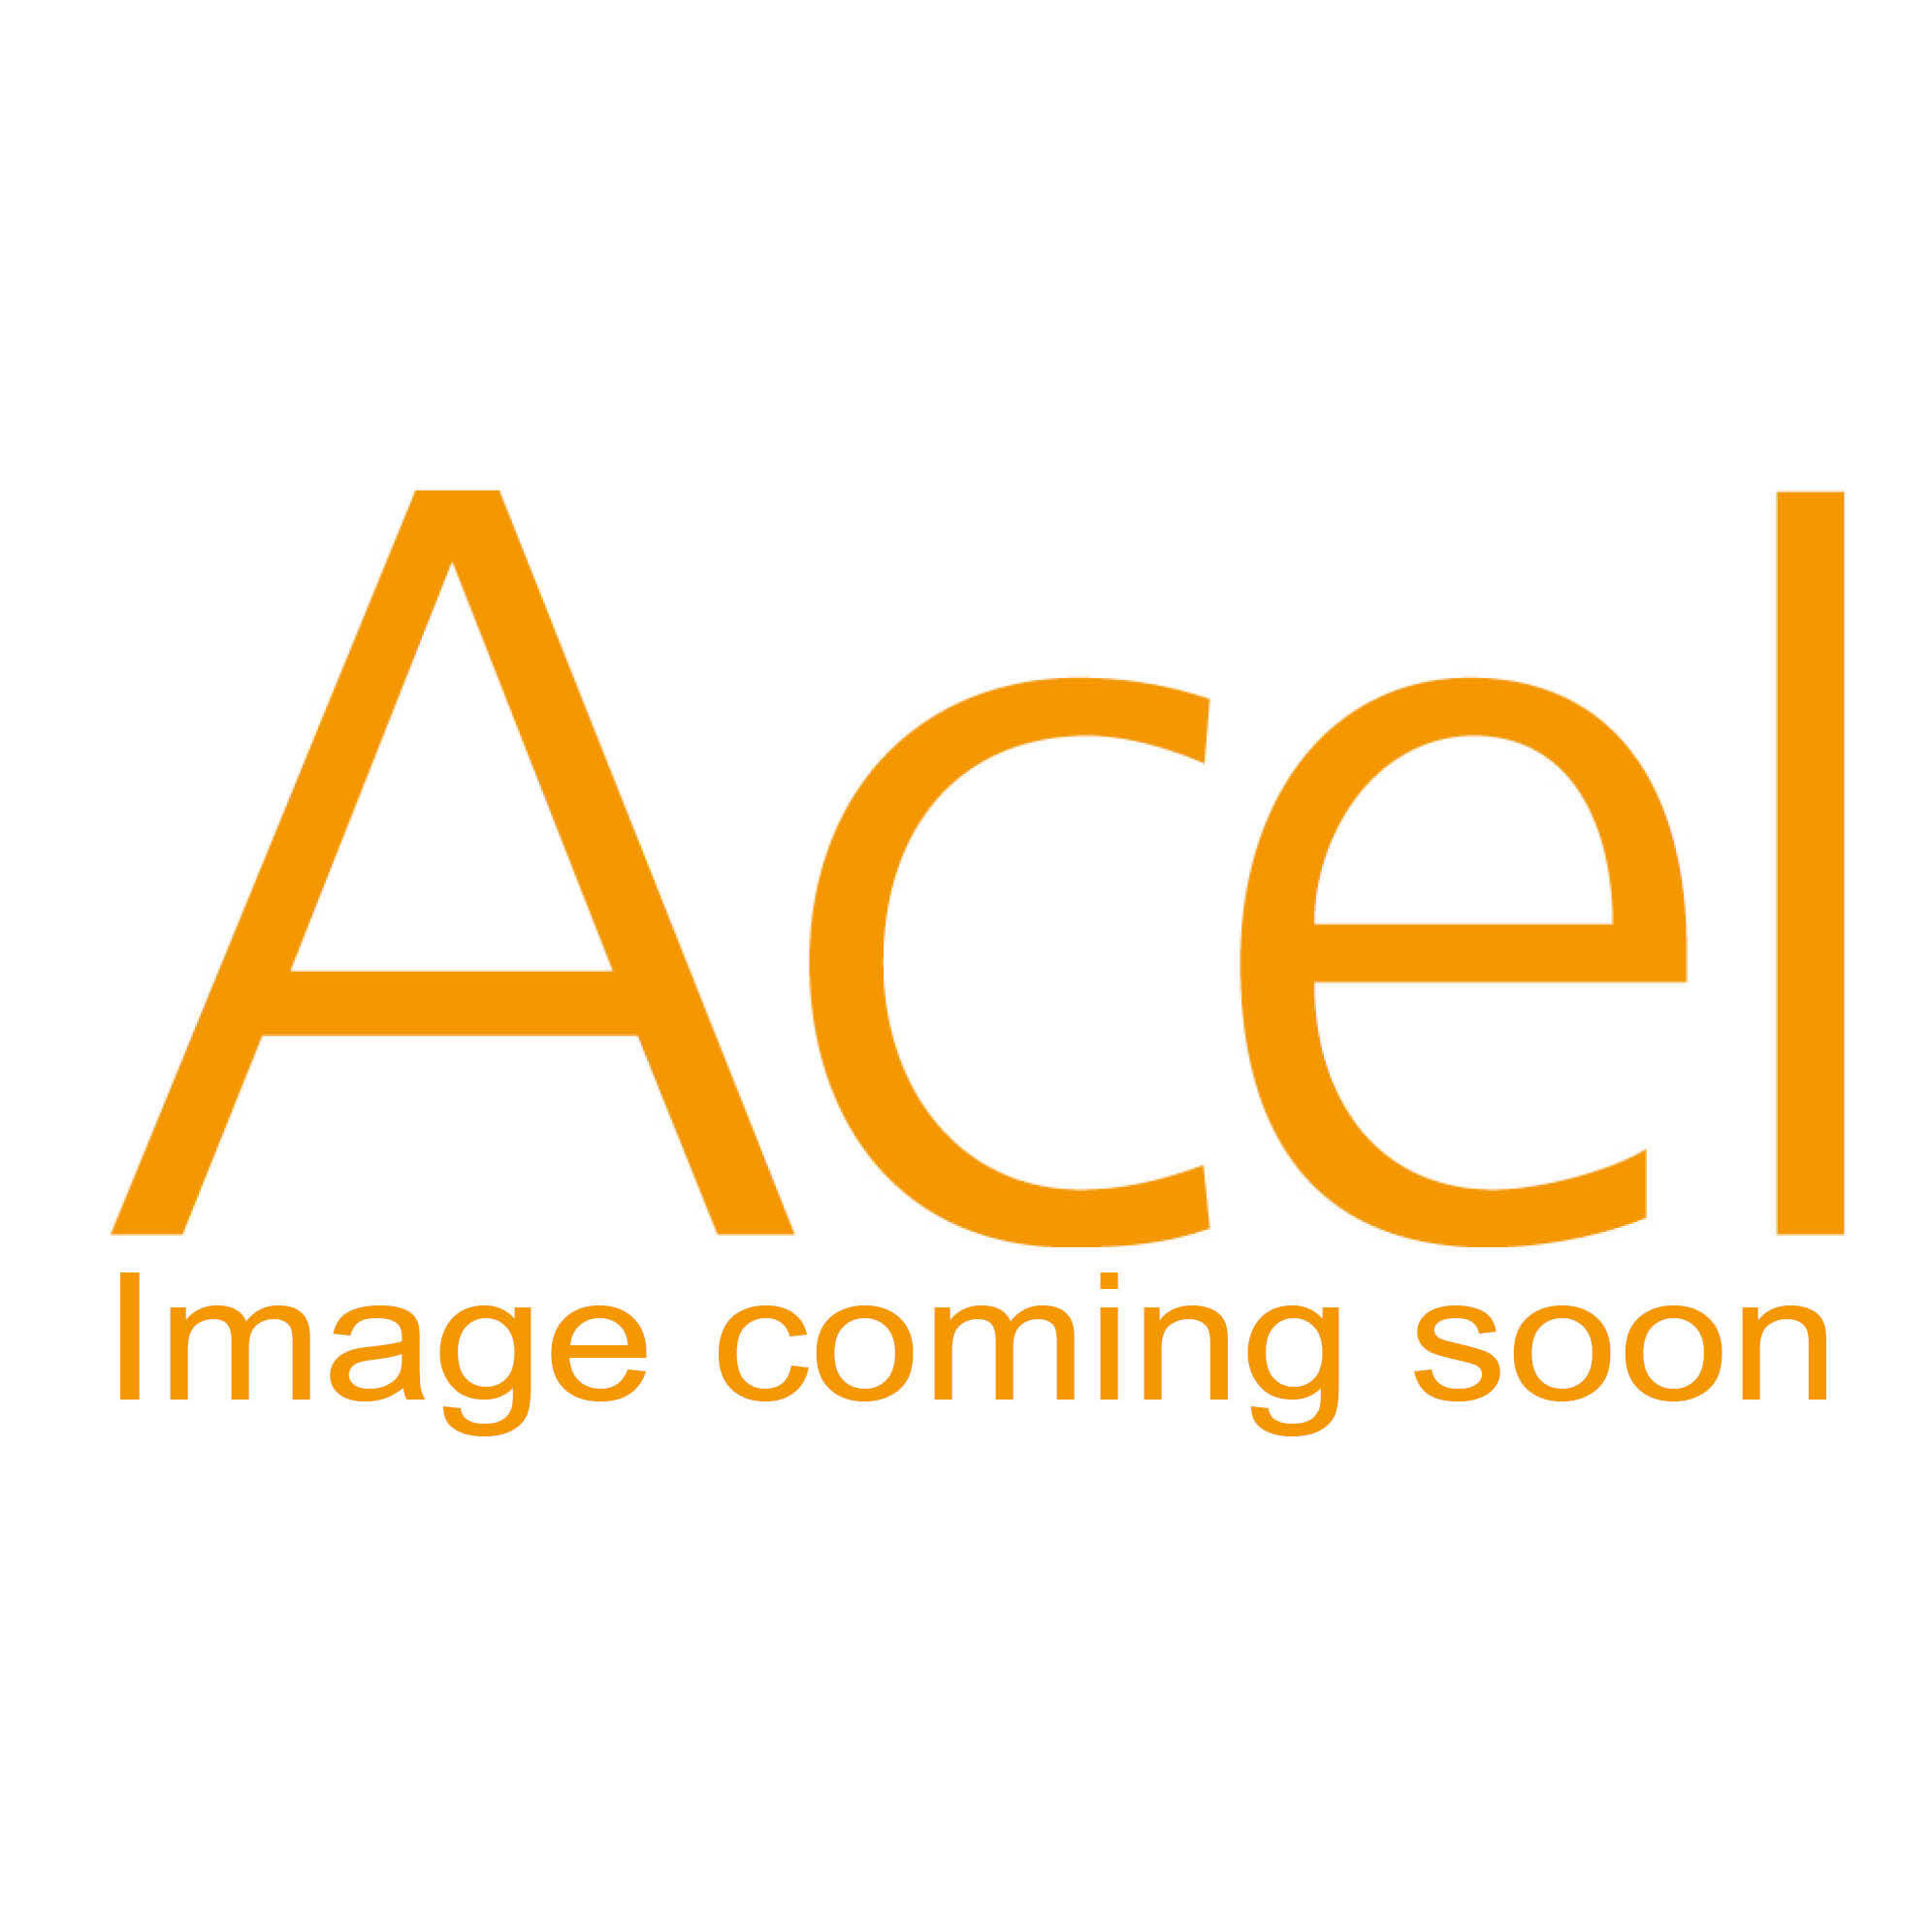 Self Adhesive Vinyl Test and Inspection Labels - Fail test labels large 42.5 x 32.5mm Pk50